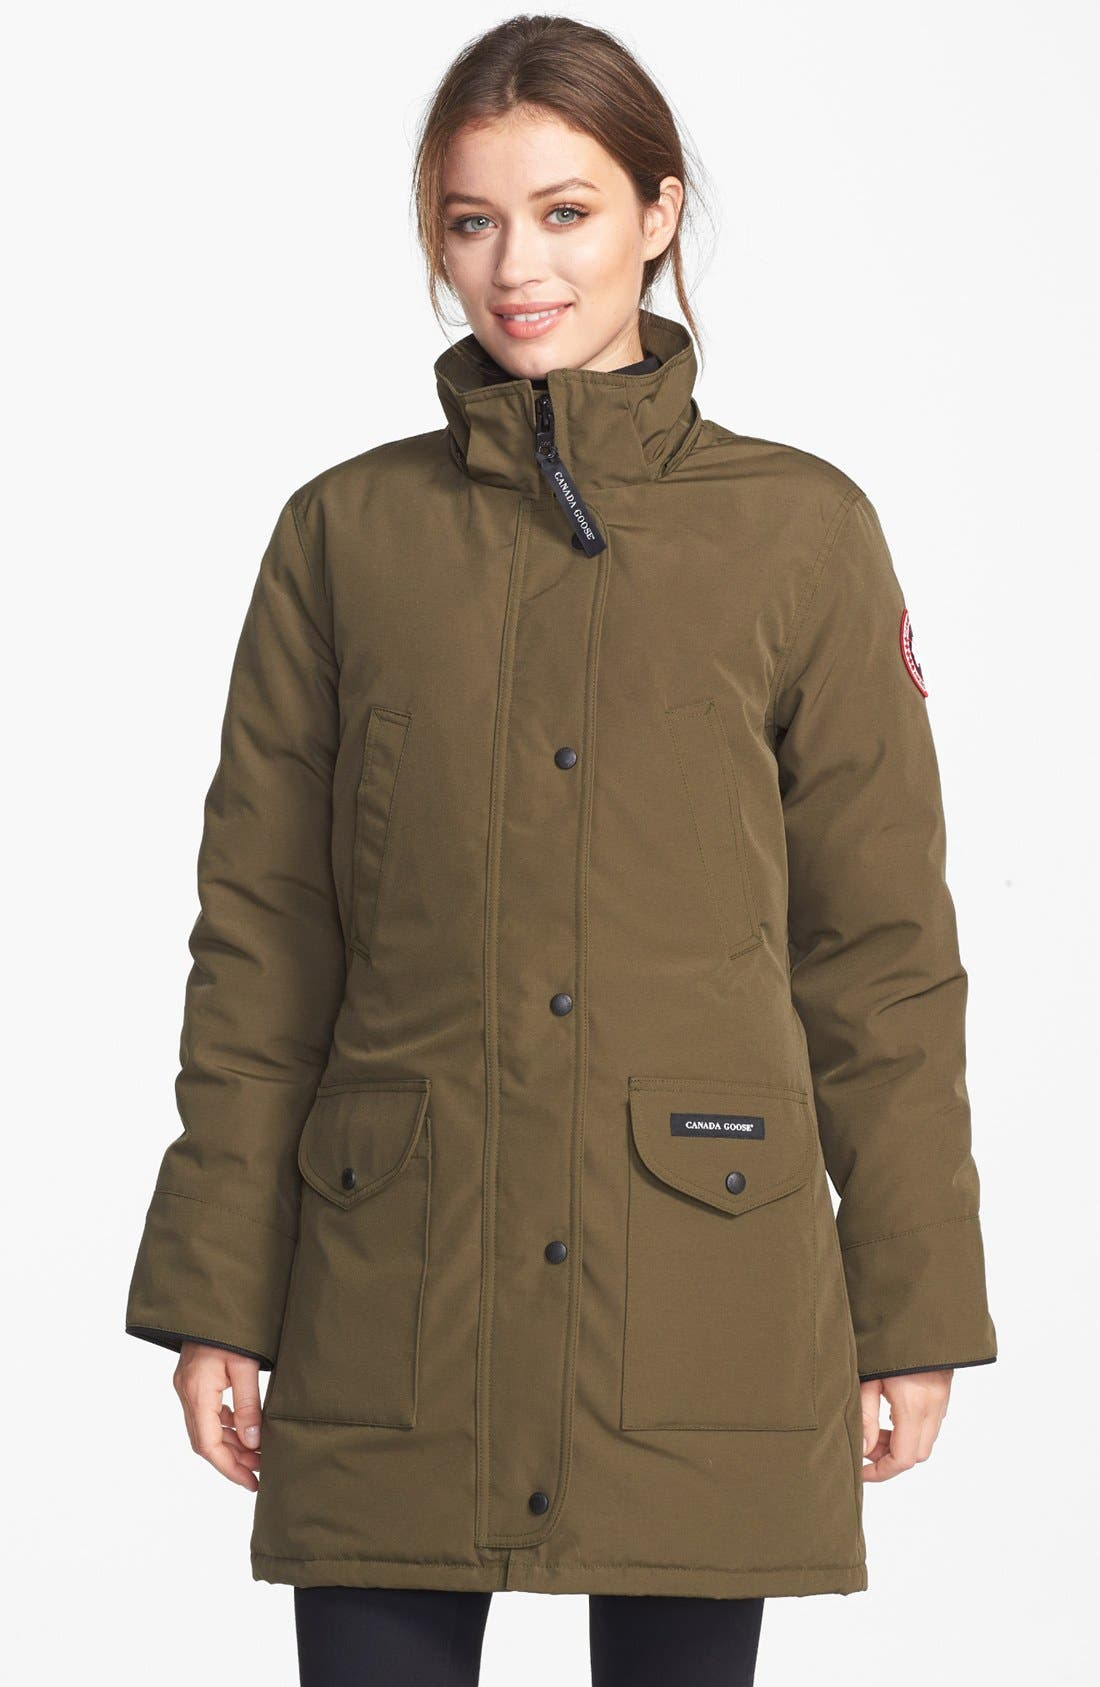 CANADA GOOSE,                             'Trillium' Regular Fit Down Parka with Genuine Coyote Fur Trim,                             Alternate thumbnail 9, color,                             MILITARY GREEN